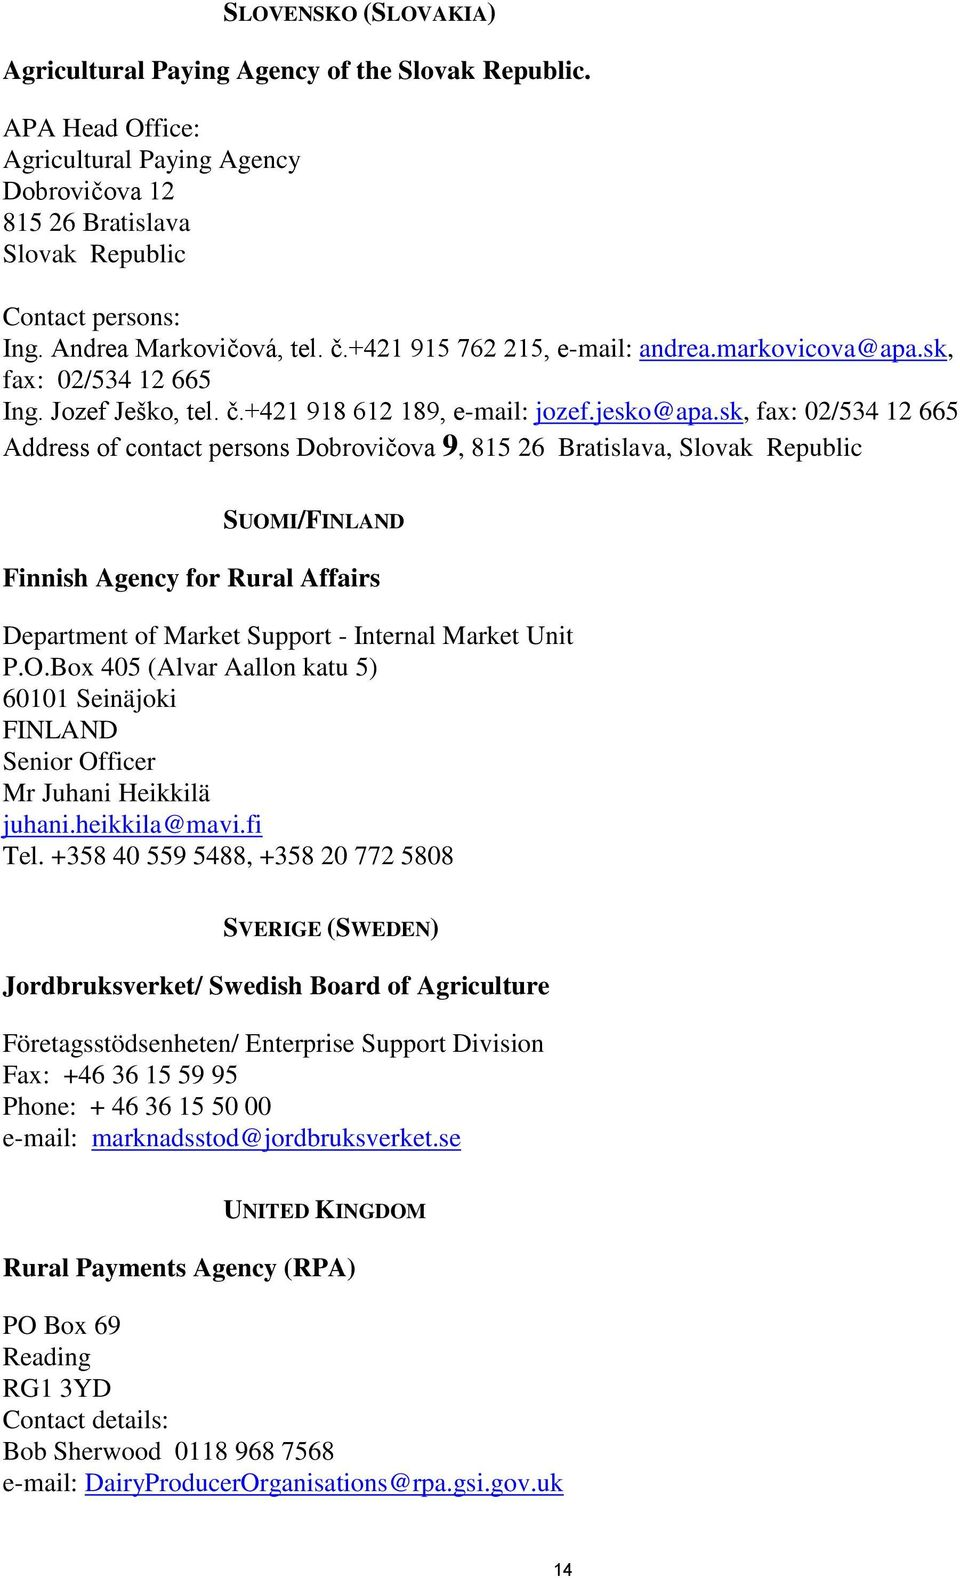 sk, fax: 02/534 12 665 Address of contact persons Dobrovičova 9, 815 26 Bratislava, Slovak Republic SUOMI/FINLAND Finnish Agency for Rural Affairs Department of Market Support - Internal Market Unit